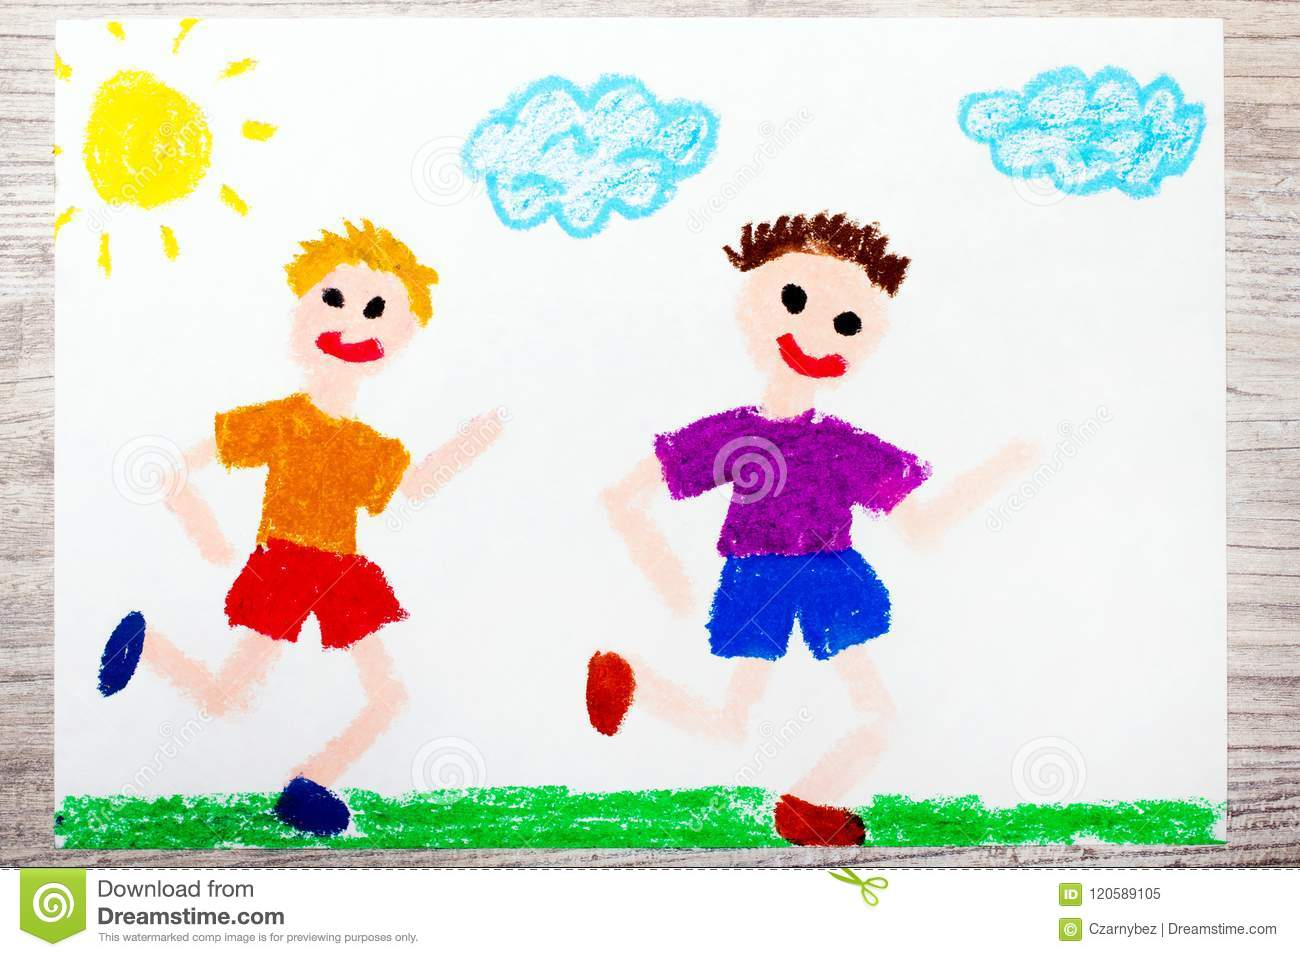 Drawing two smiling running boys